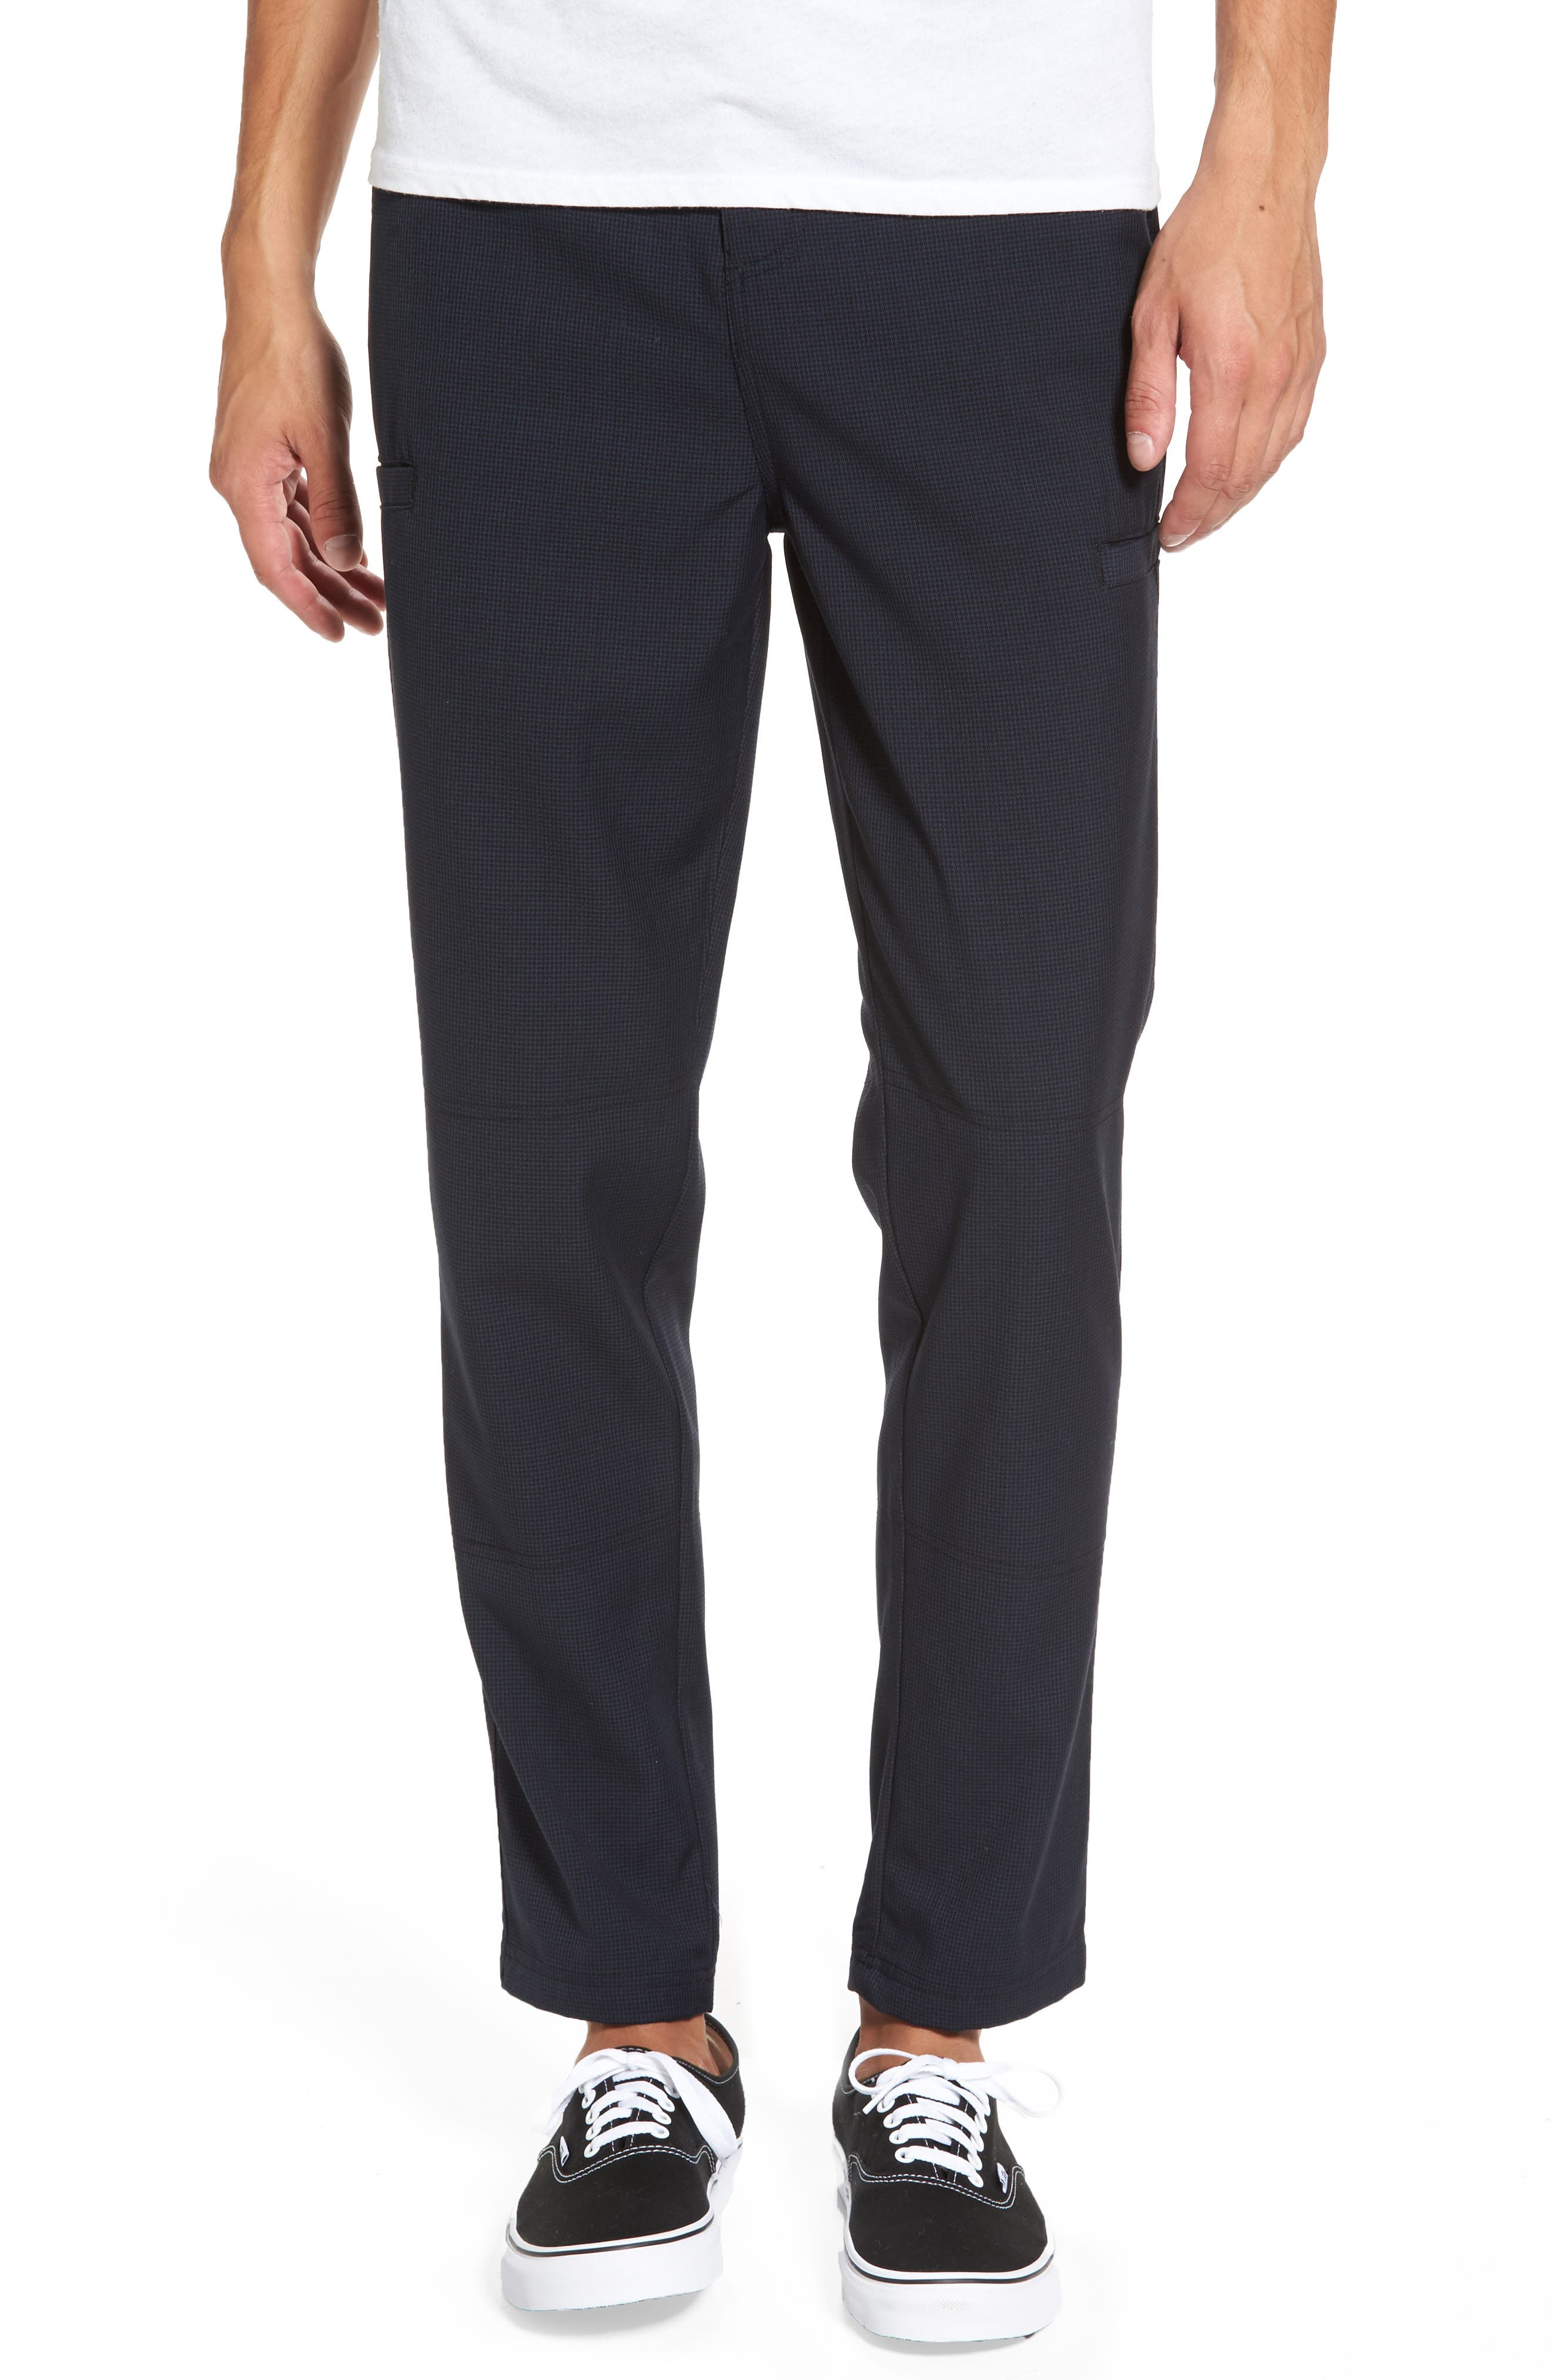 Haycroft Trousers,                         Main,                         color, Navy